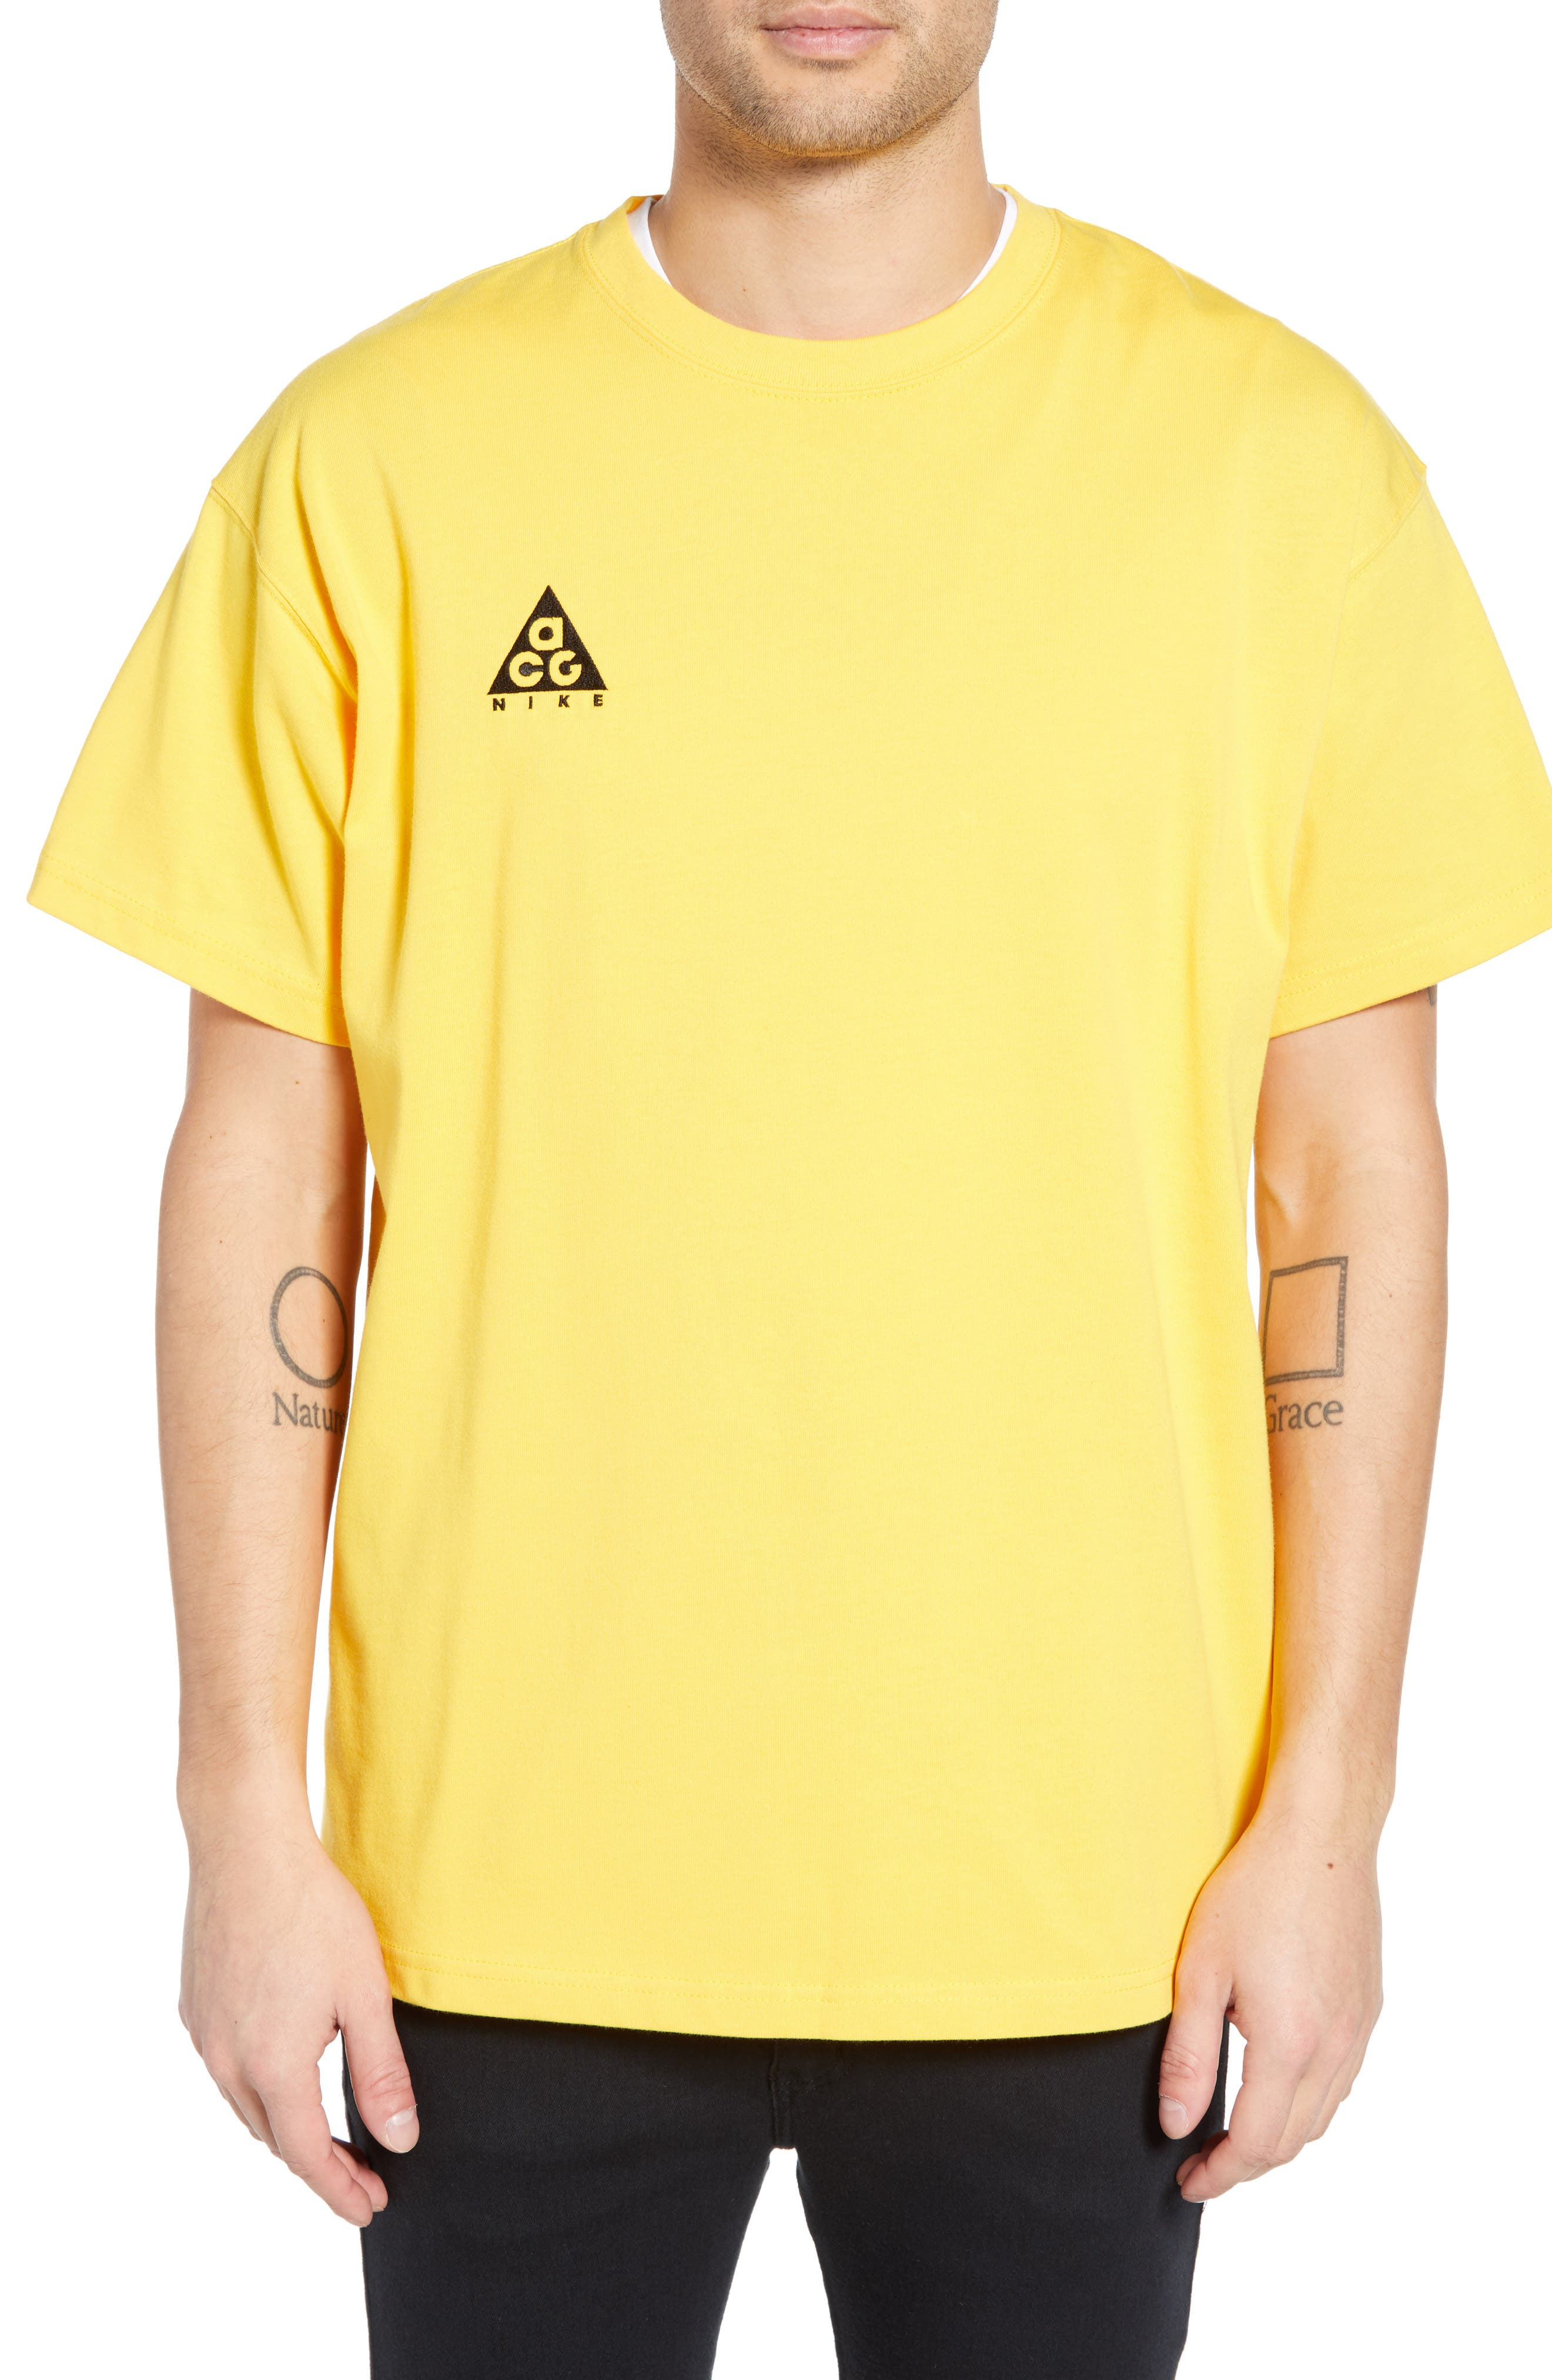 Nike Nrg All Conditions Gear Logo T-Shirt, Yellow